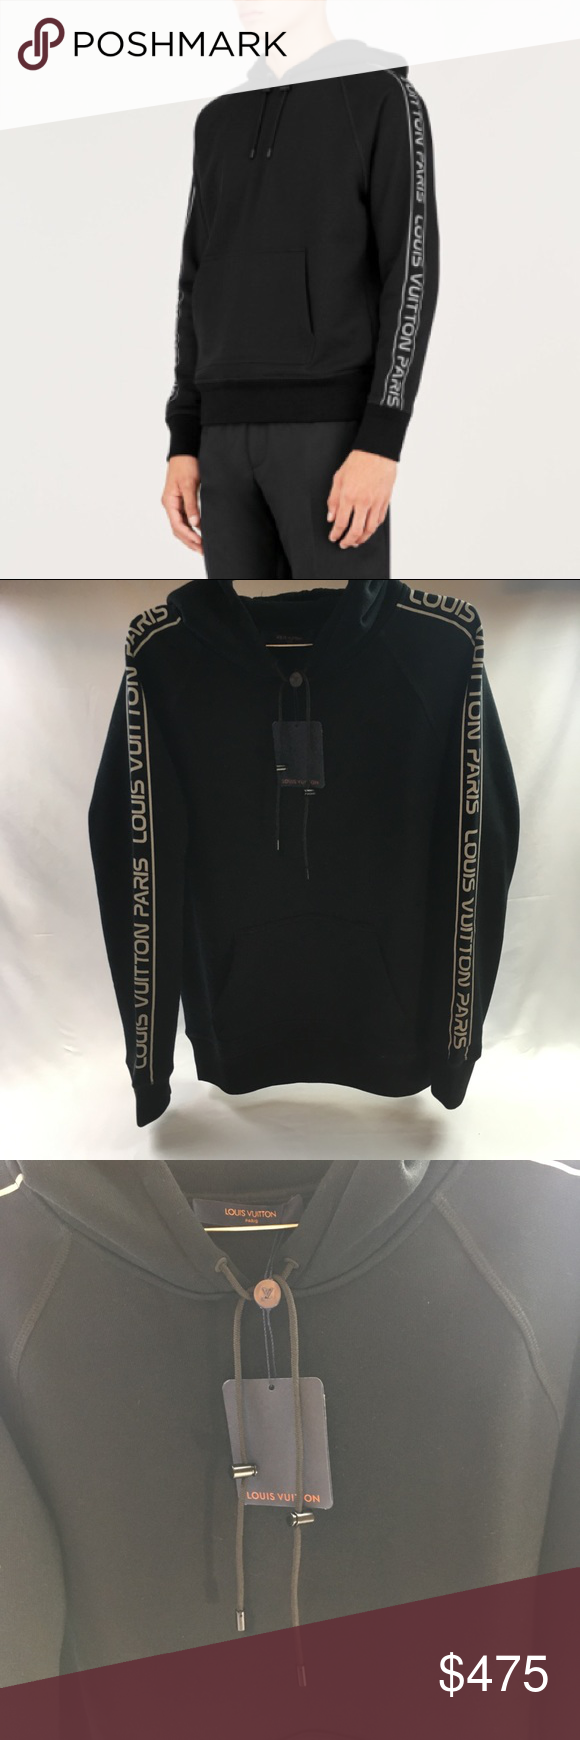 1909a2d1e70 Louis Vuitton 3M Reflective Hoodie Hey Ya'll Up for grabs is my LV ...